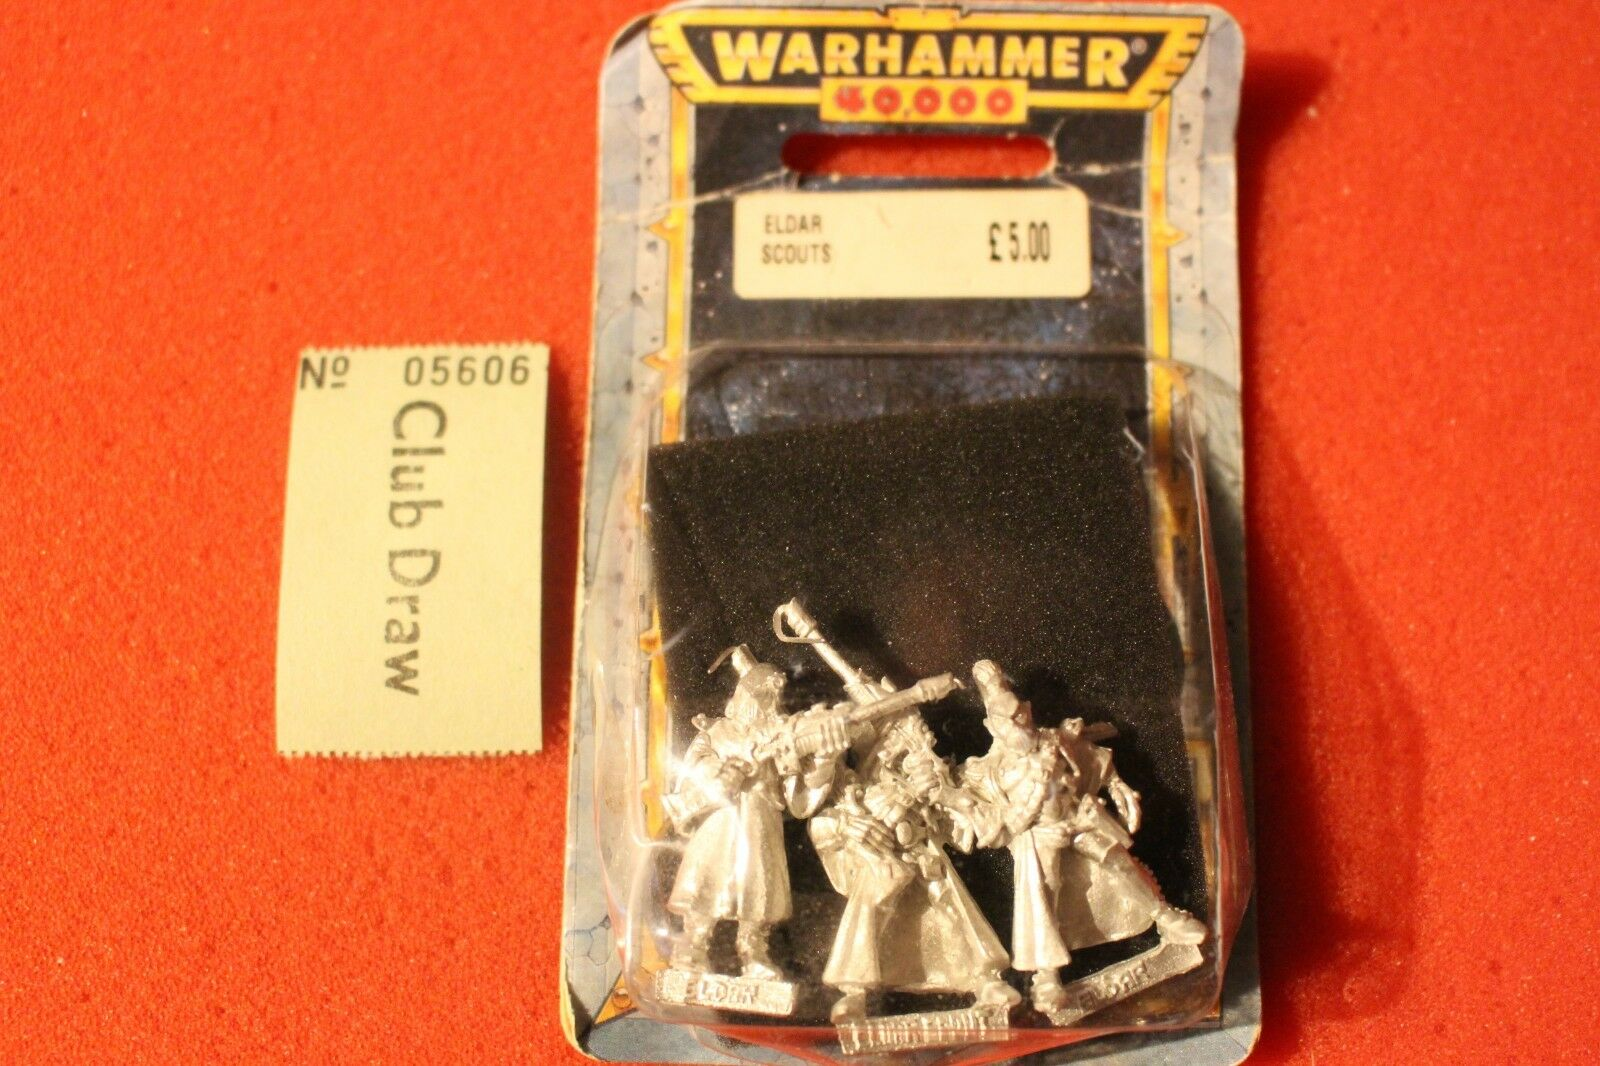 Games Workshop Warhammer 40k Eldar Rangers Scouts BNIB Metal New WH40K x3 Figure